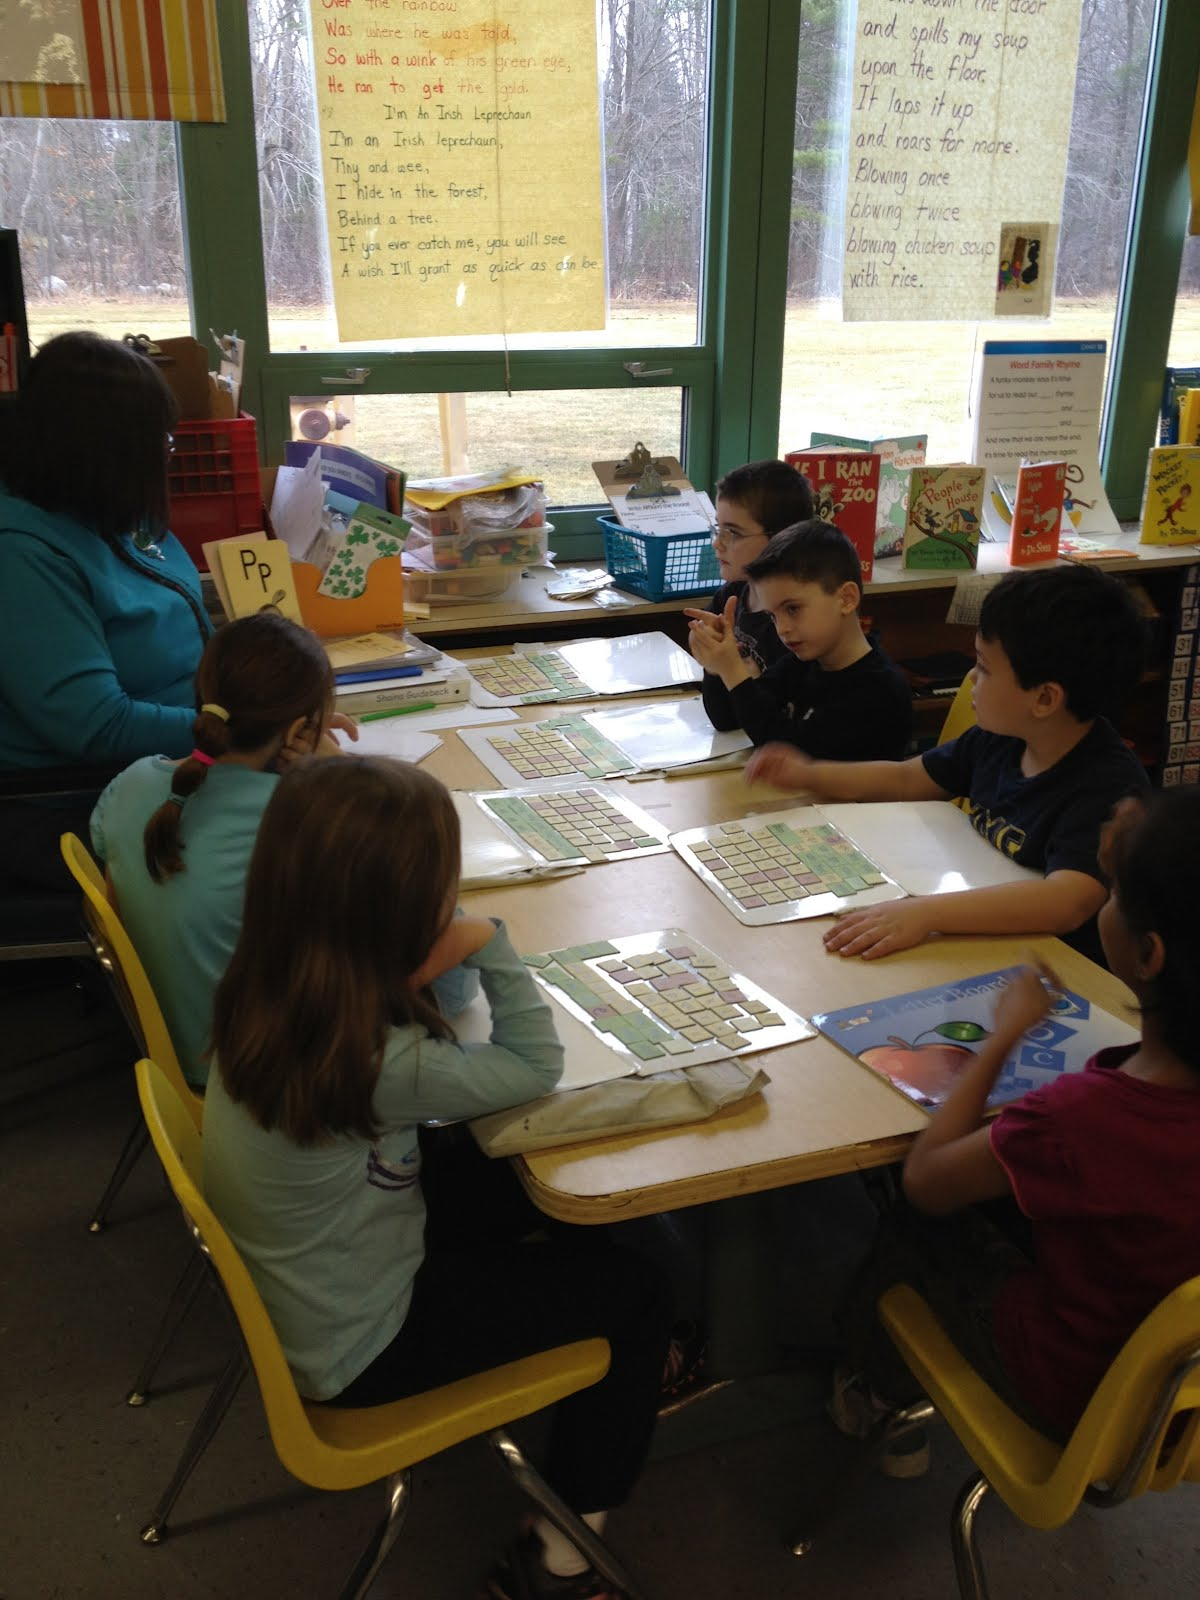 Reading Tutor Network Dyslexia Tutors: Pine Glen Elementary School Principal's Blog: This Morning